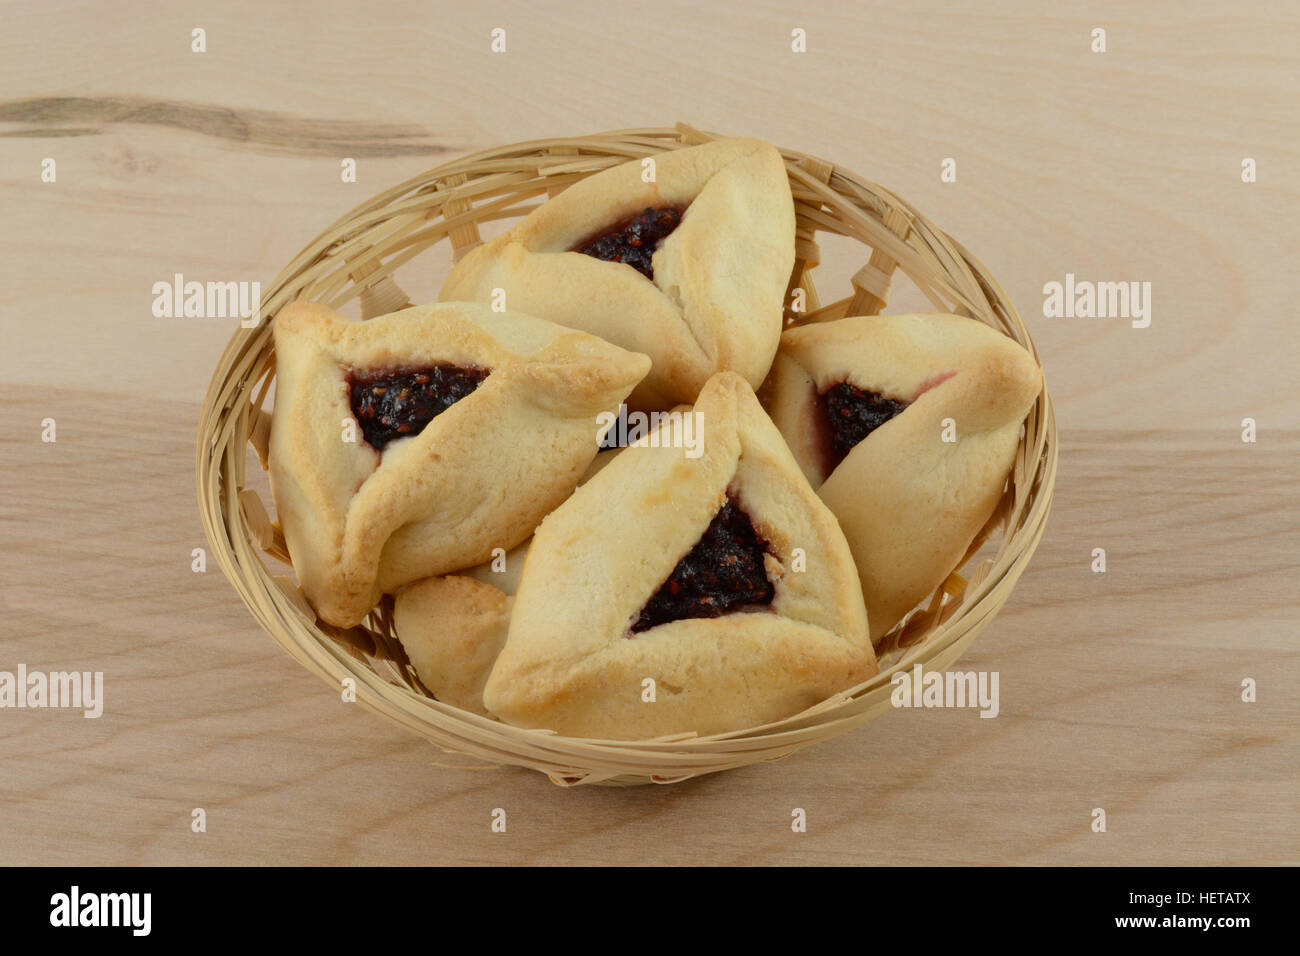 Hamantaschen raspberry pastries in wicker basket on table - Stock Image